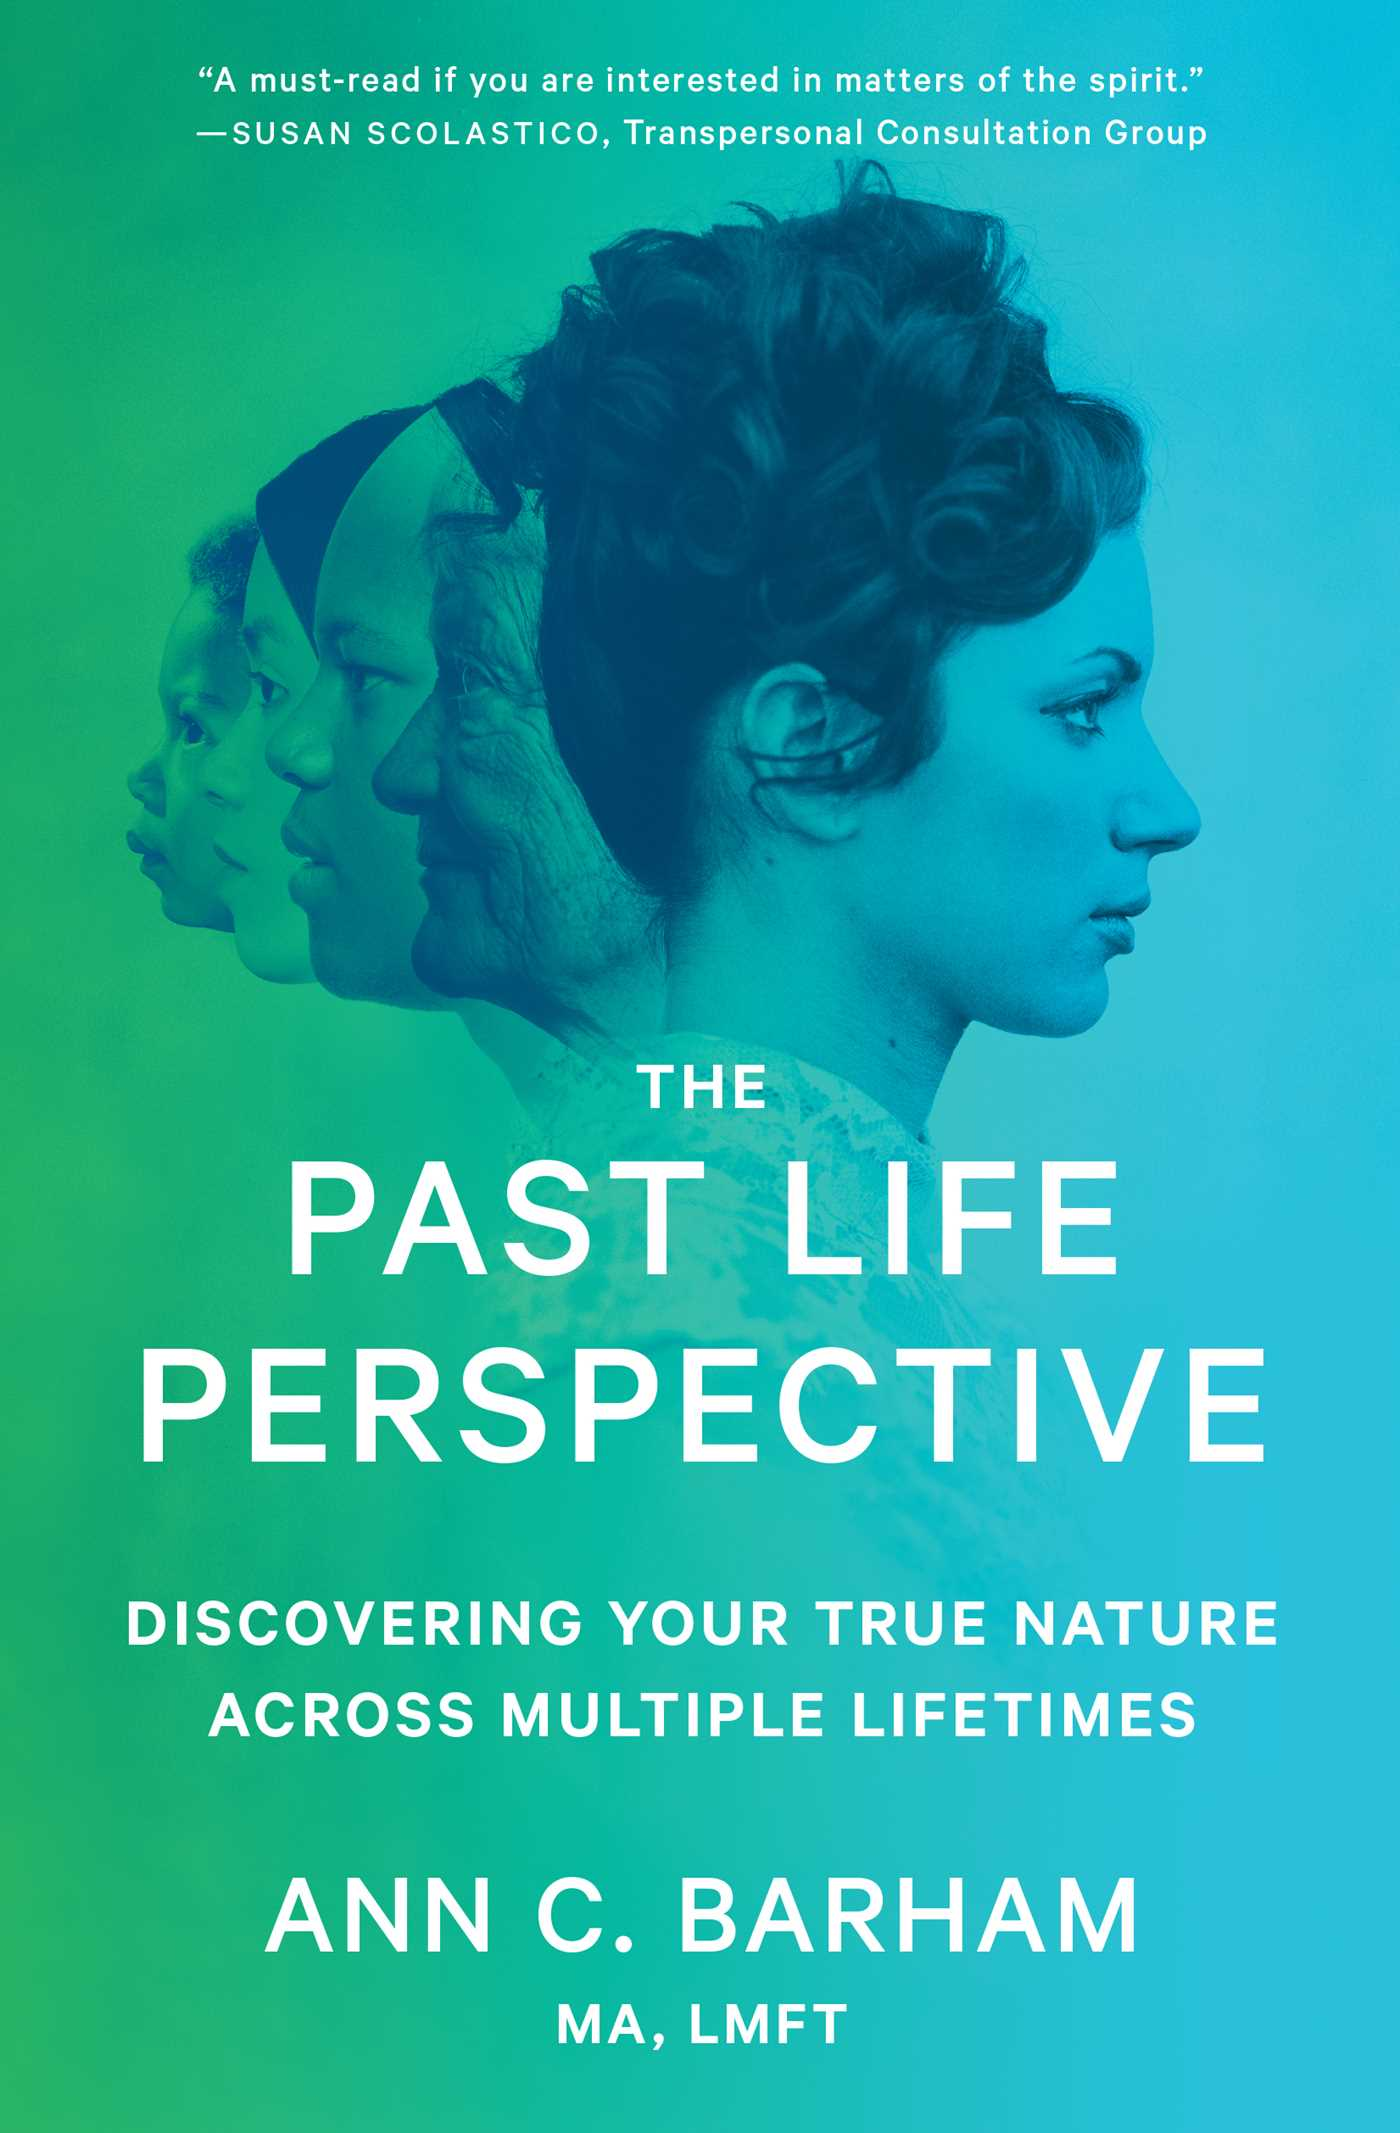 The past life perspective 9781501135743 hr